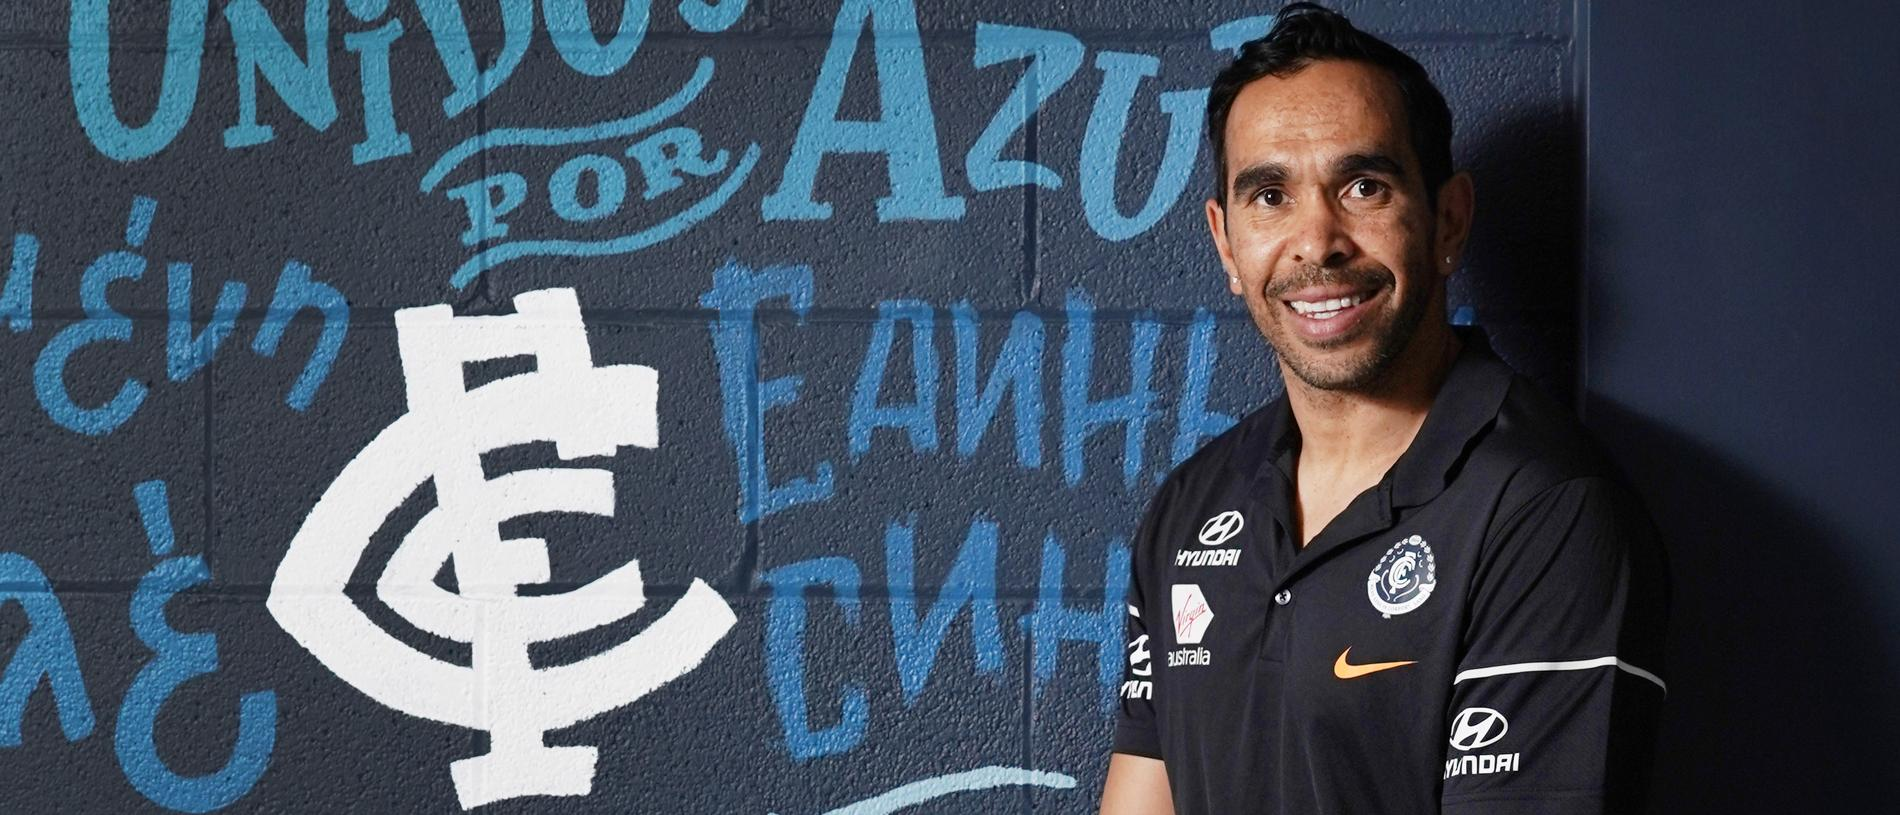 Eddie Betts poses during a Carlton Blues press conference in Melbourne, Monday, October 14, 2019. Betts, previously with the Adelaide Crows, has signed a one year contract until the end of 2020. (AAP Image/Michael Dodge) NO ARCHIVING